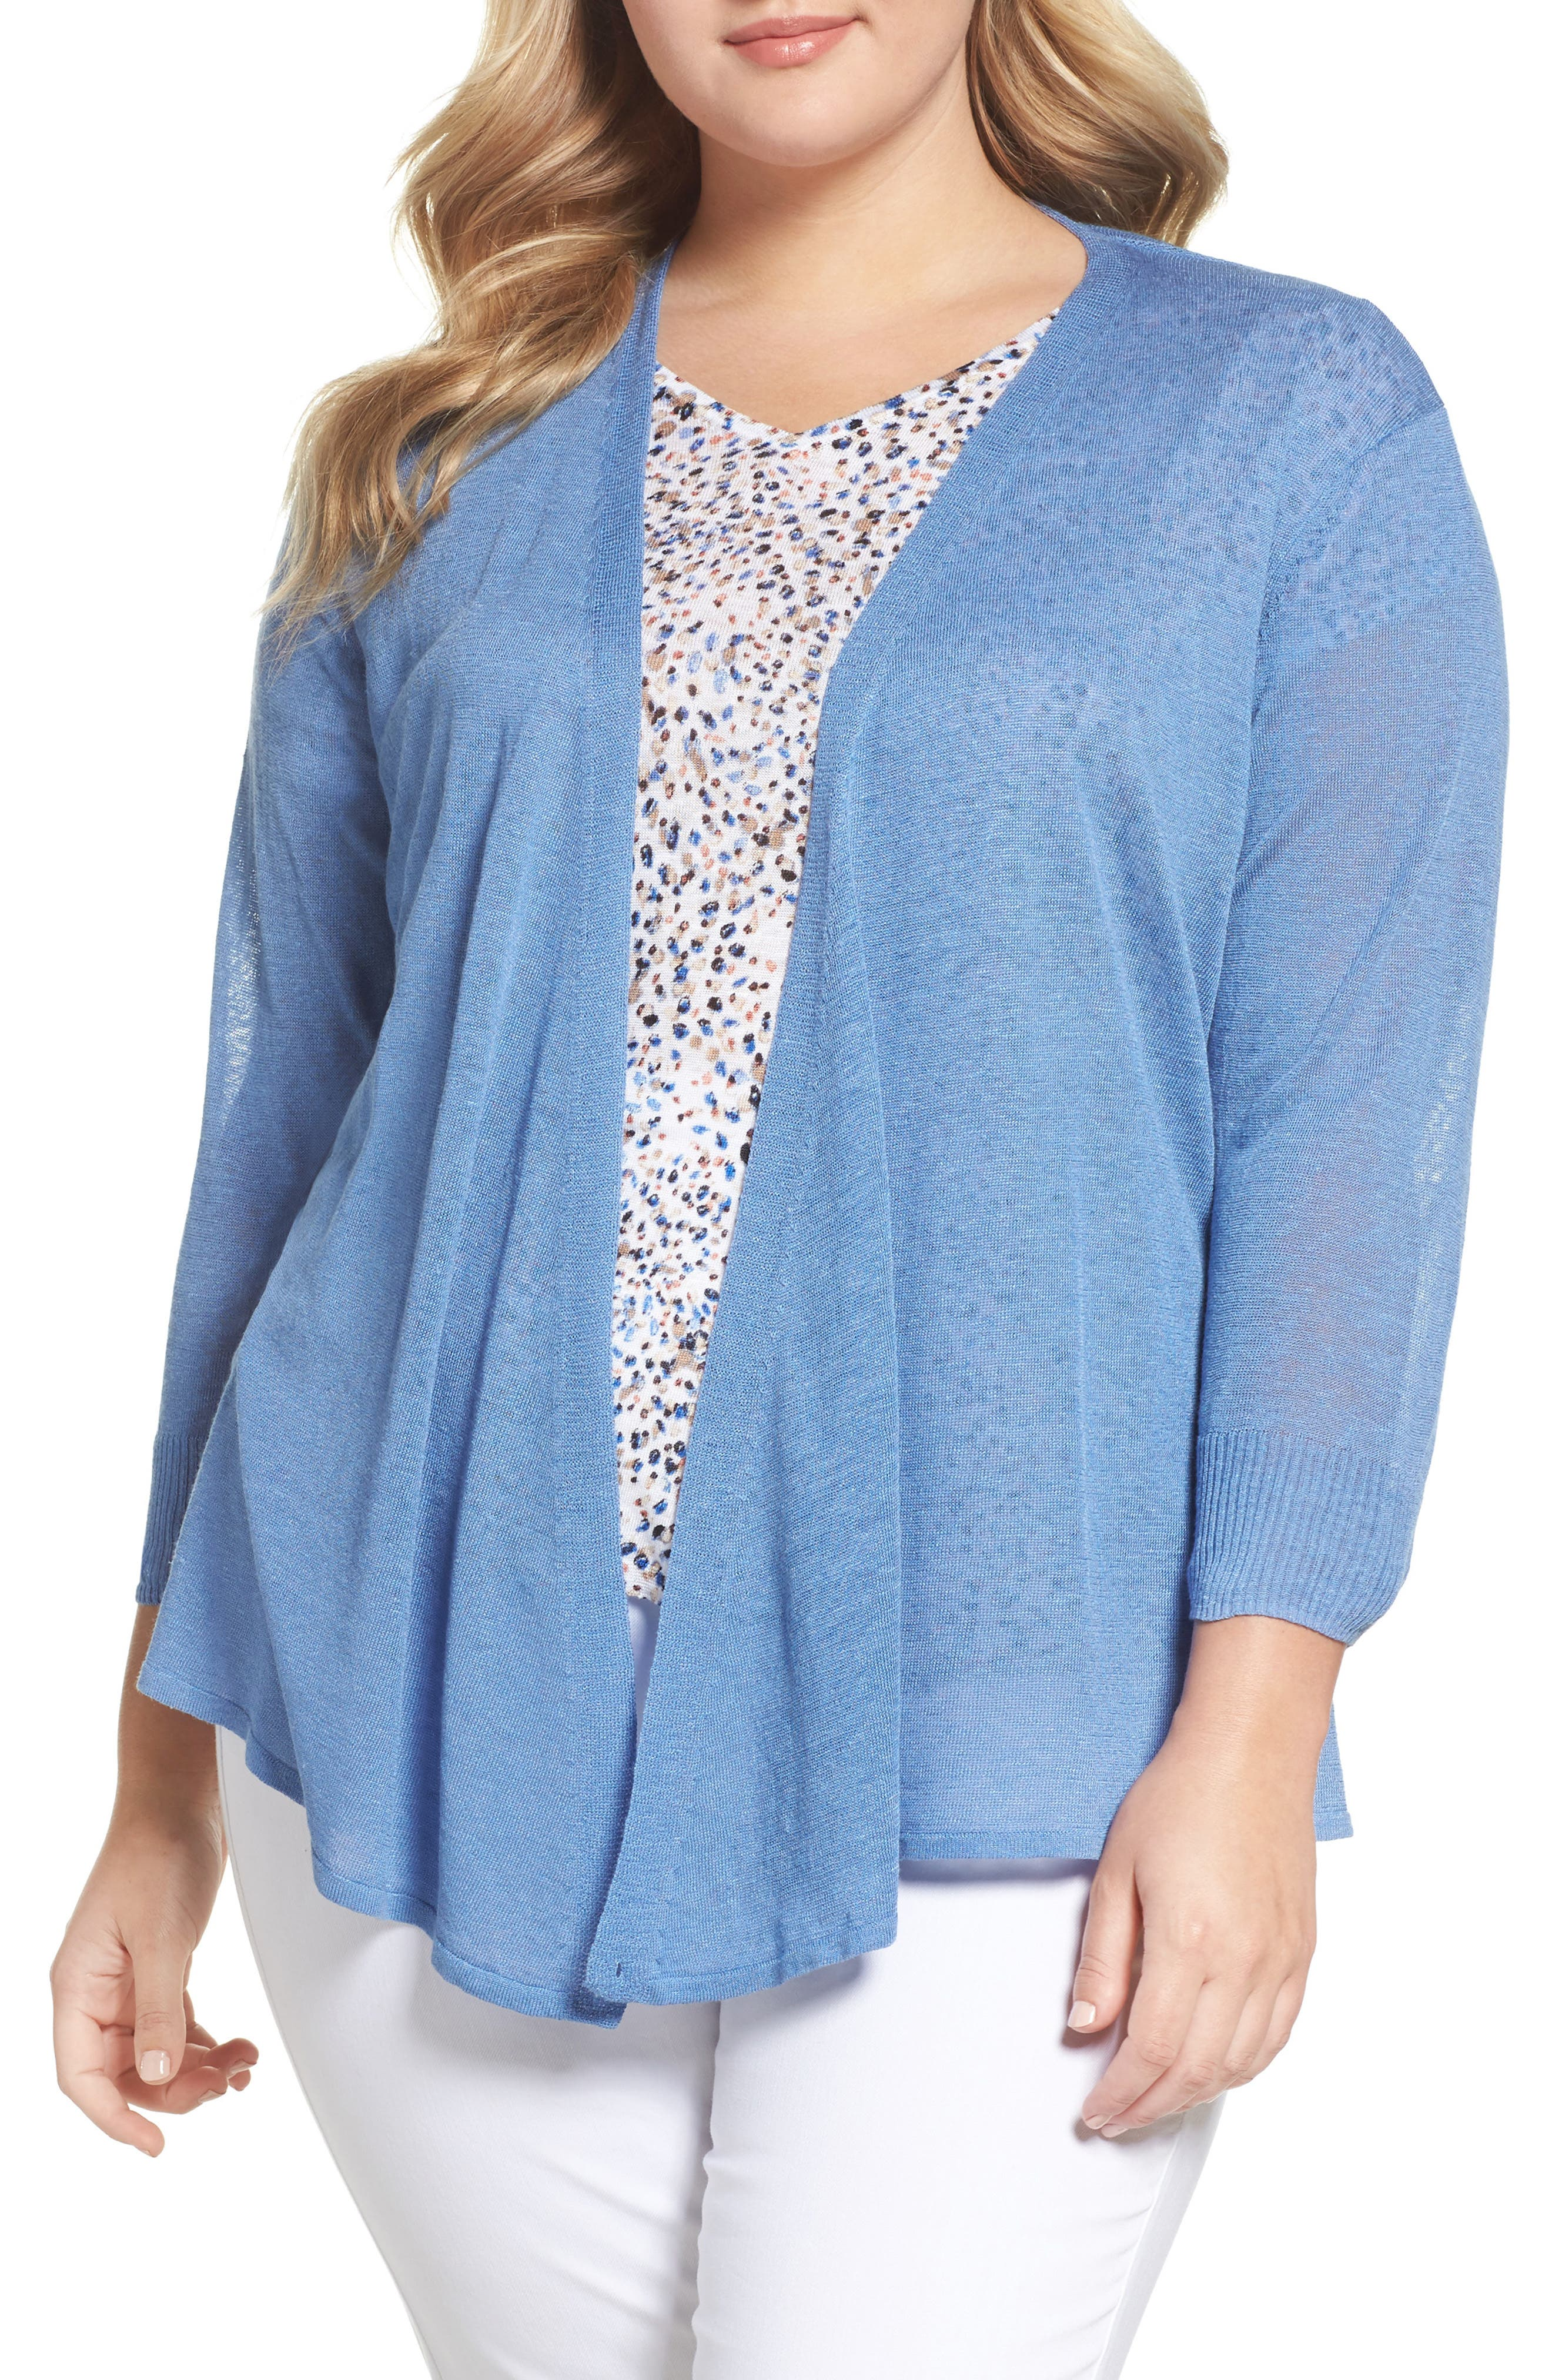 Main Image - NIC+ZOE Four-Way Convertible Cardigan (Plus Size)